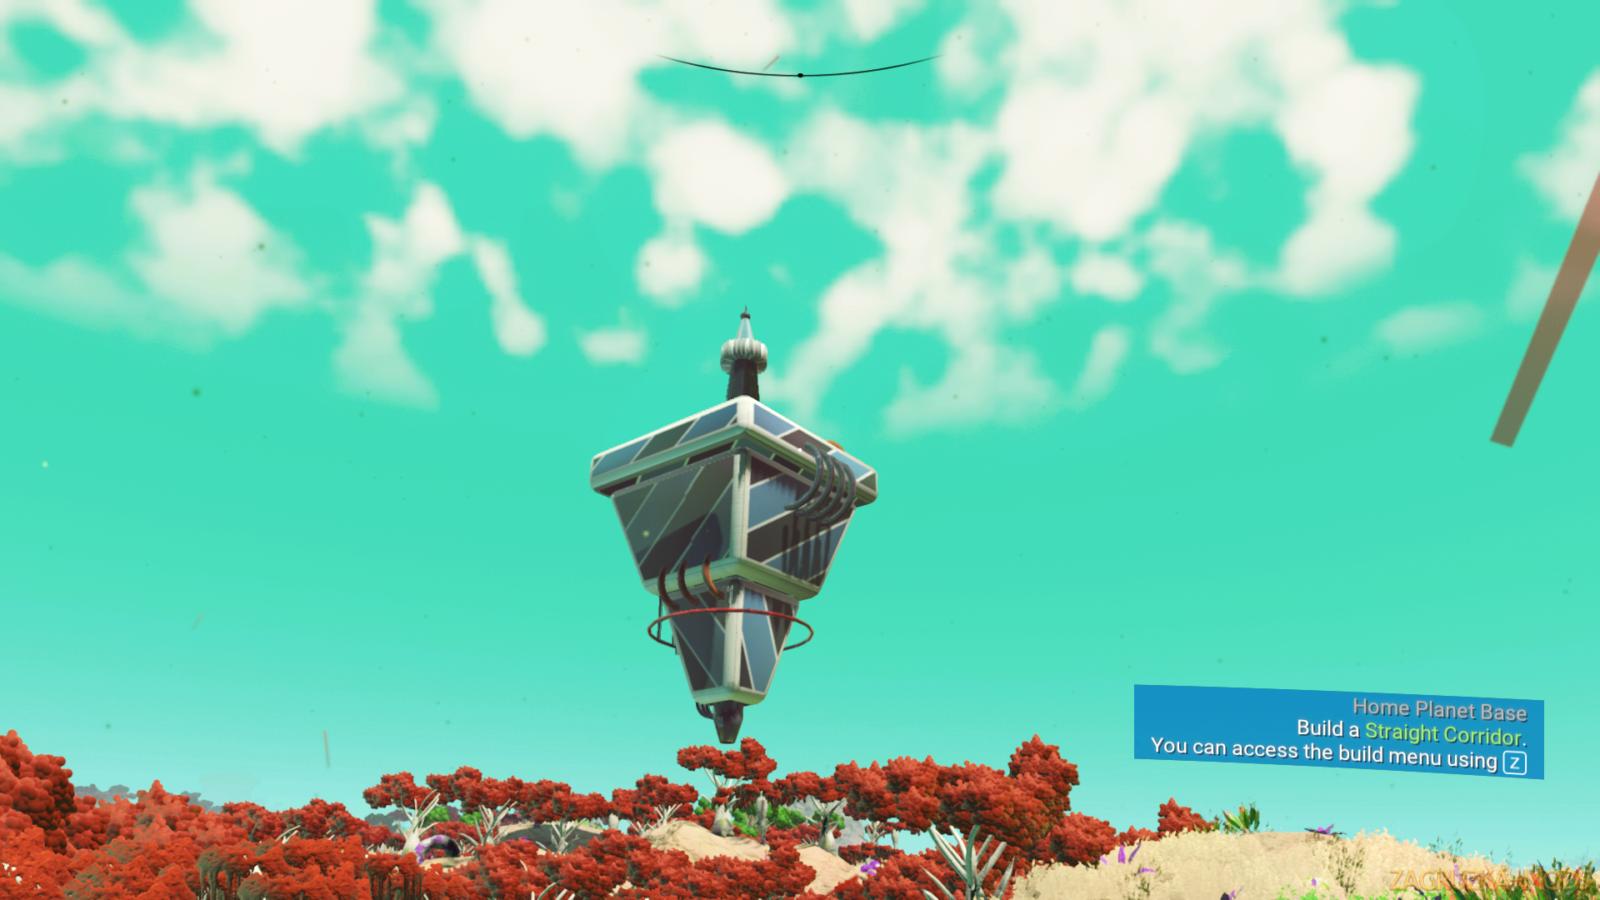 Alien structures mod v2.1 for No Mans Sky